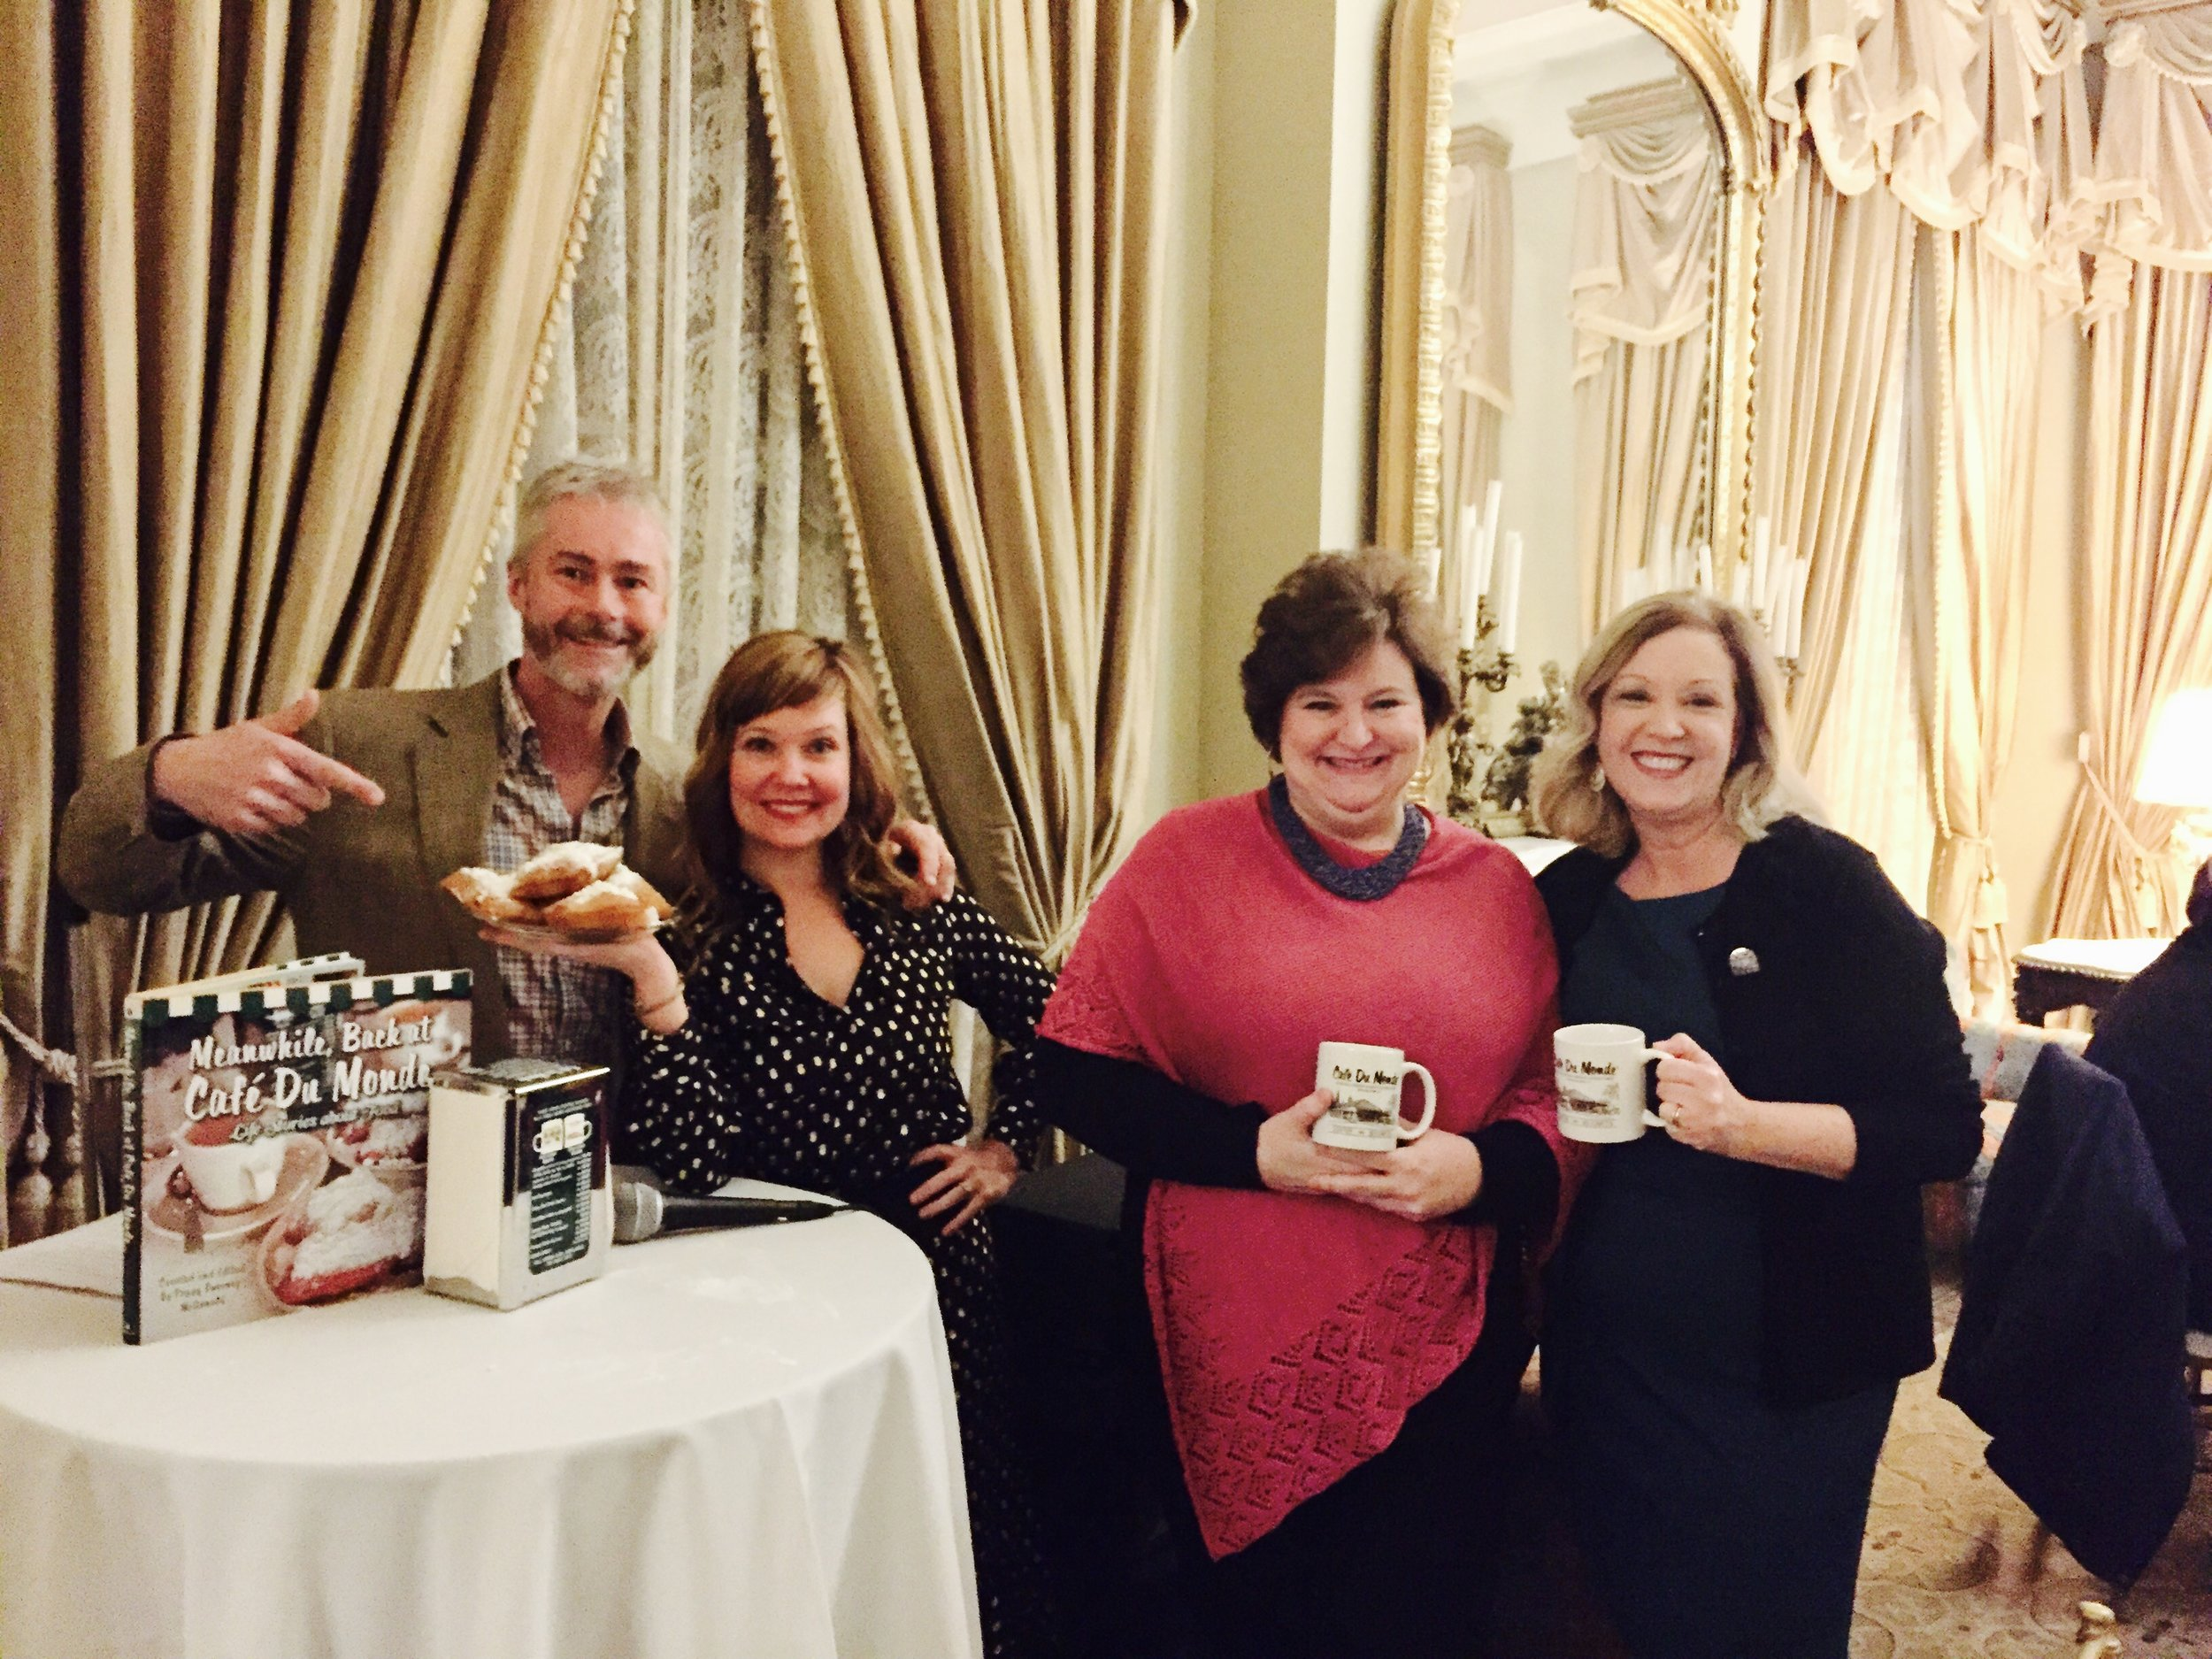 The cast of Meanwhile, Back at Cafe Du Monde... at Dunleith Plantation for the Preserve Louisiana Natchez Cultural Tour (from left to right) James Fox-Smith, Fairleigh Jackson, Lynn Taylor and Peggy Sweeney-McDonald